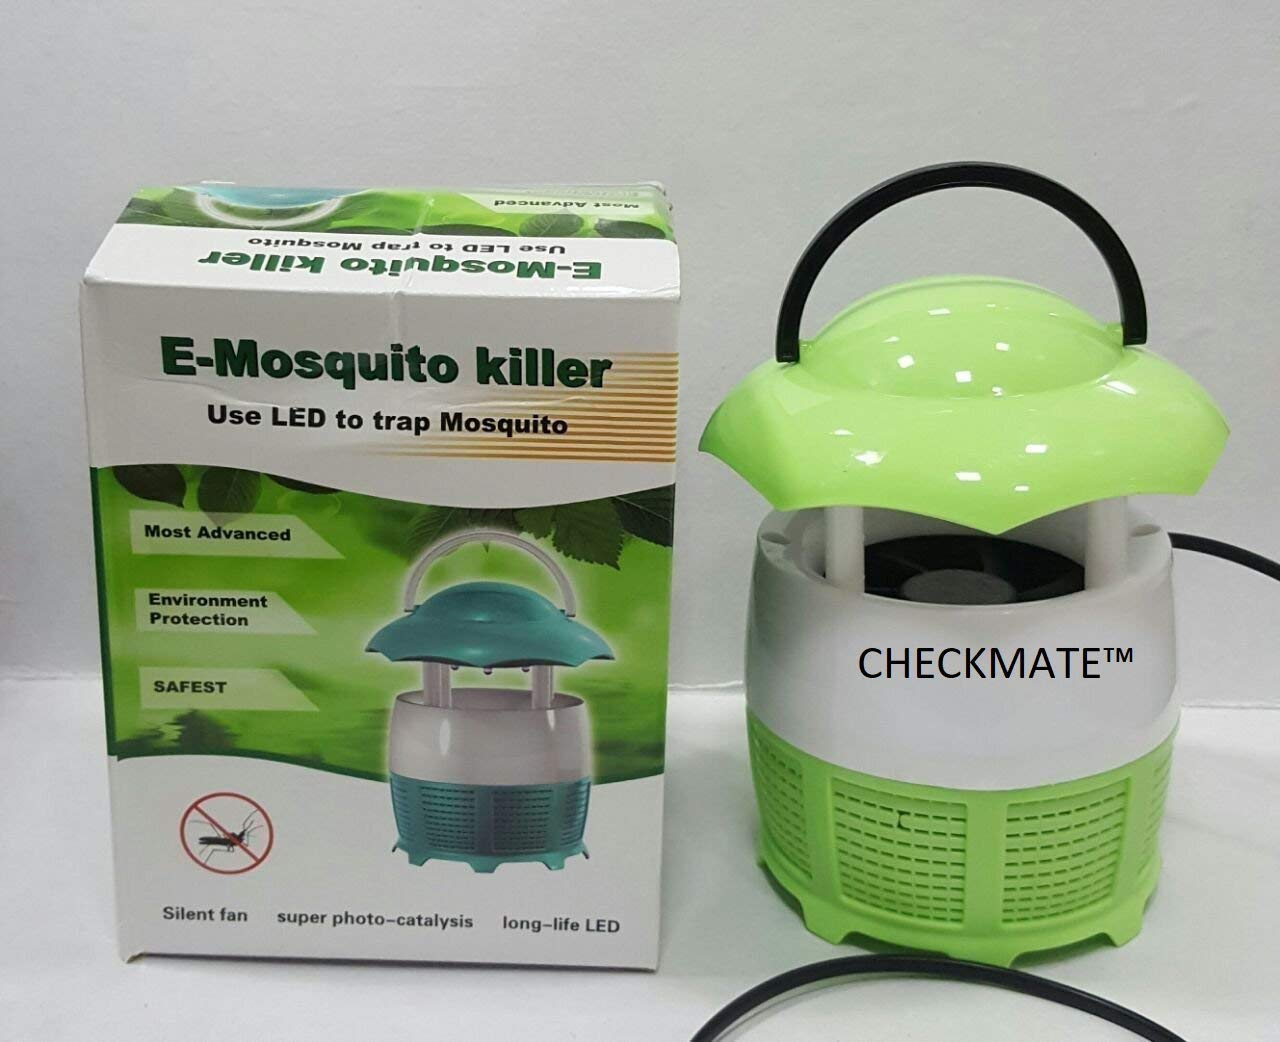 Checkmate Electronic Led Mosquito Killer Lamp